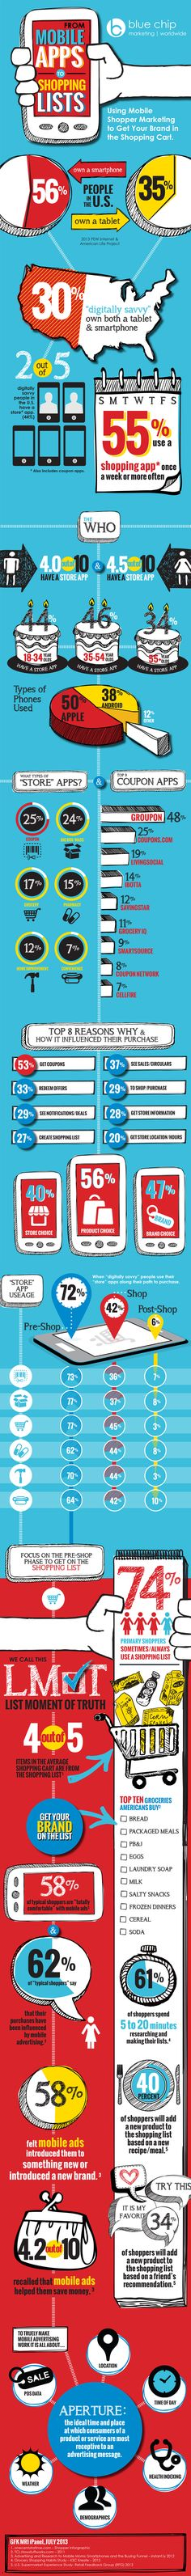 Mobile Shopping App Usage #bluechipww